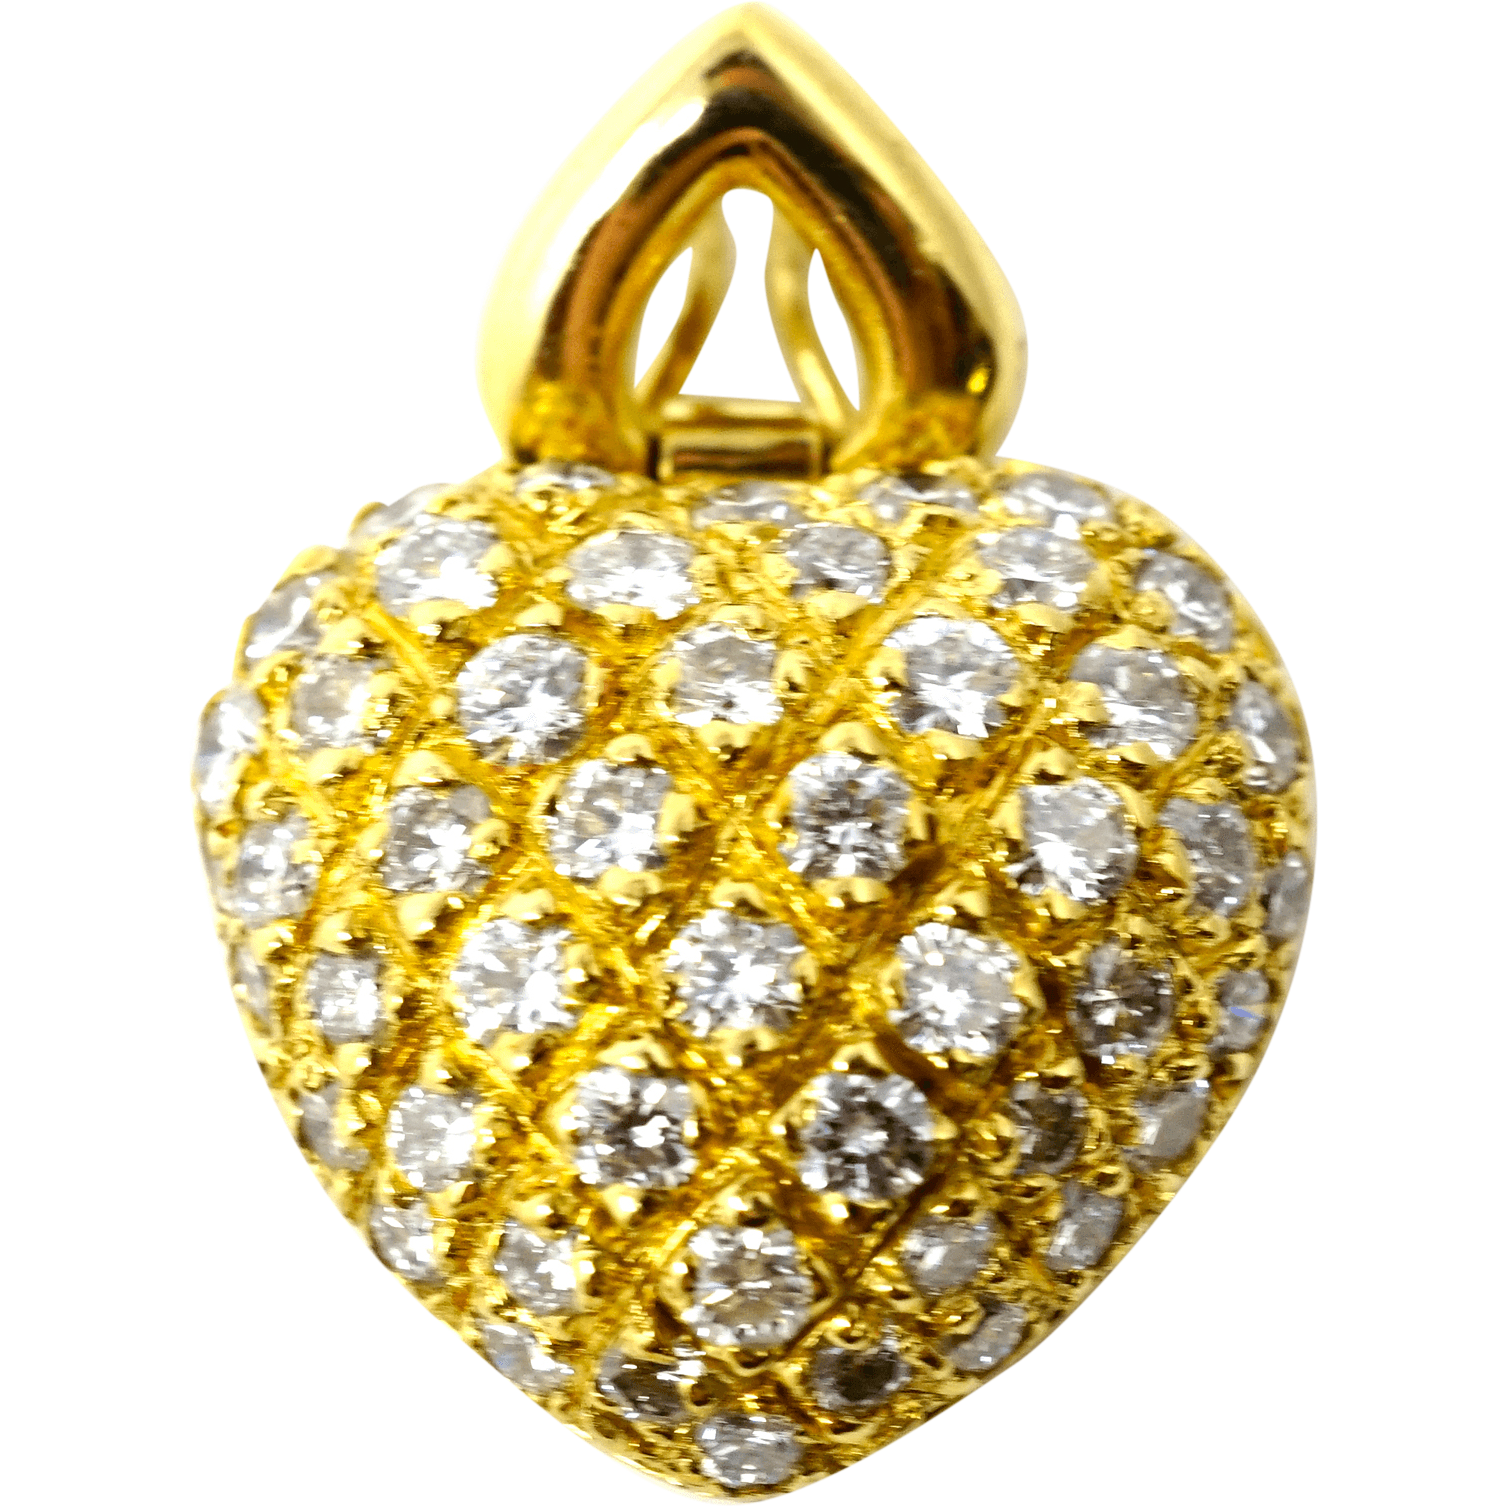 Fine heart design 18k gold pendant with 2.5c diamonds